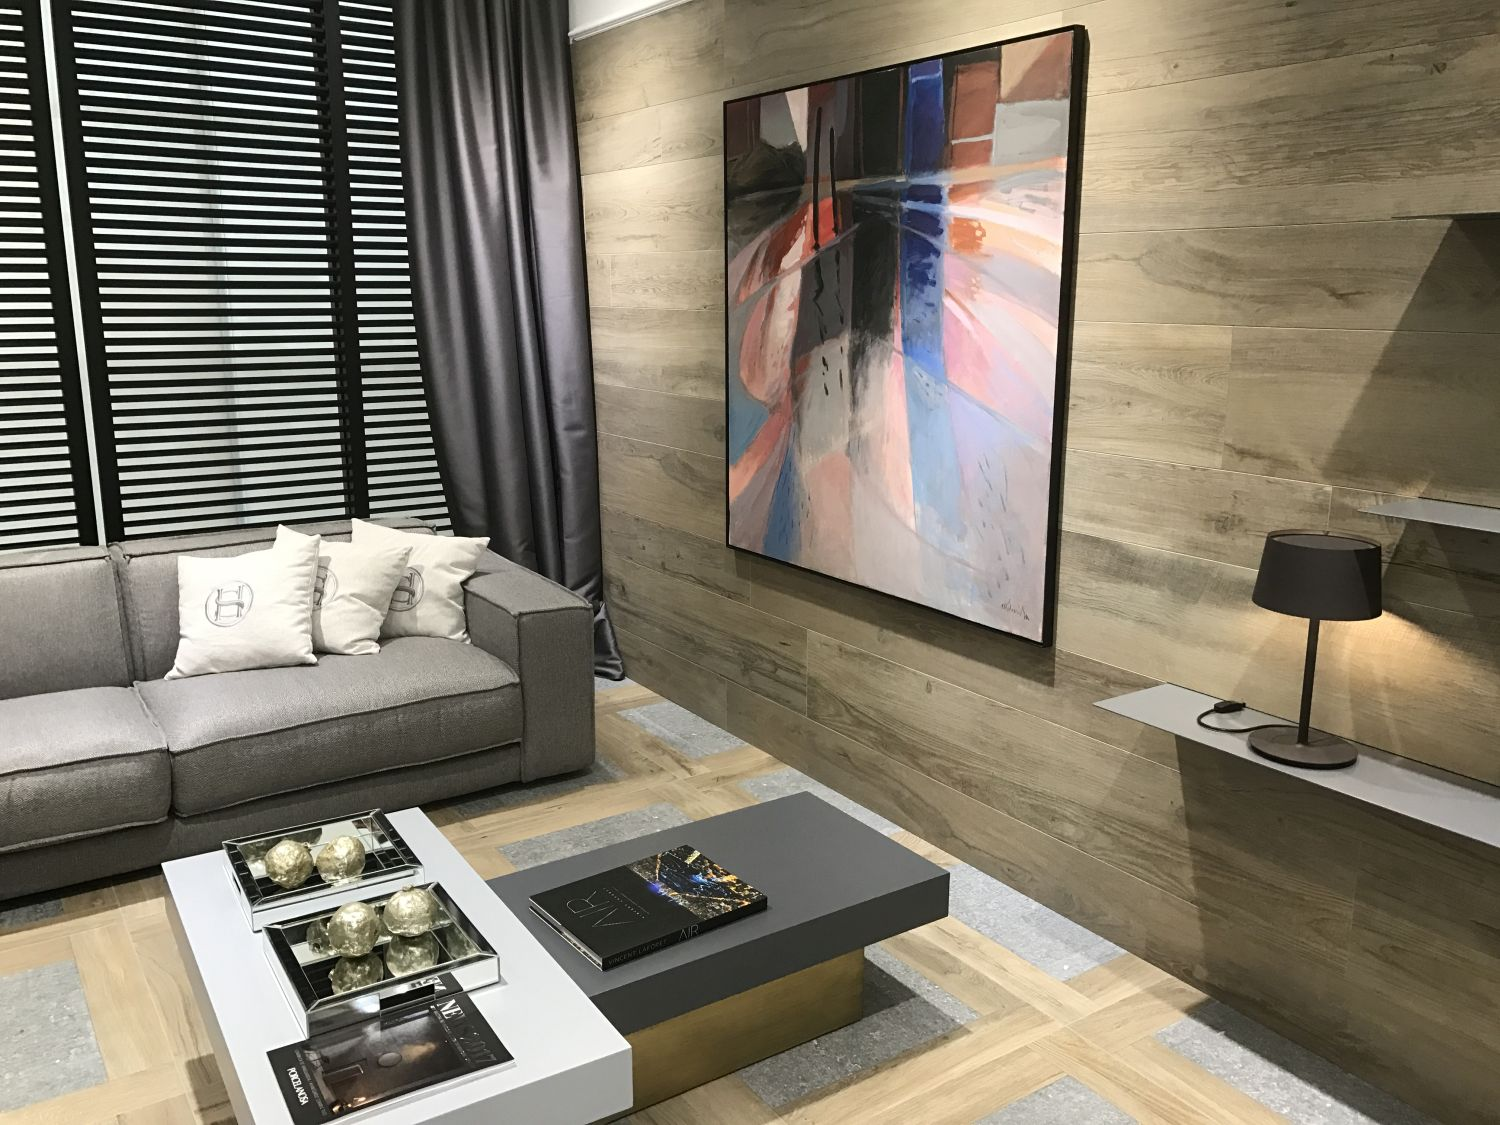 2017 trends in flooring and coverings for your dream house from 2017 trends ceramic tiles mixing wood and ceramics view in gallery dailygadgetfo Image collections